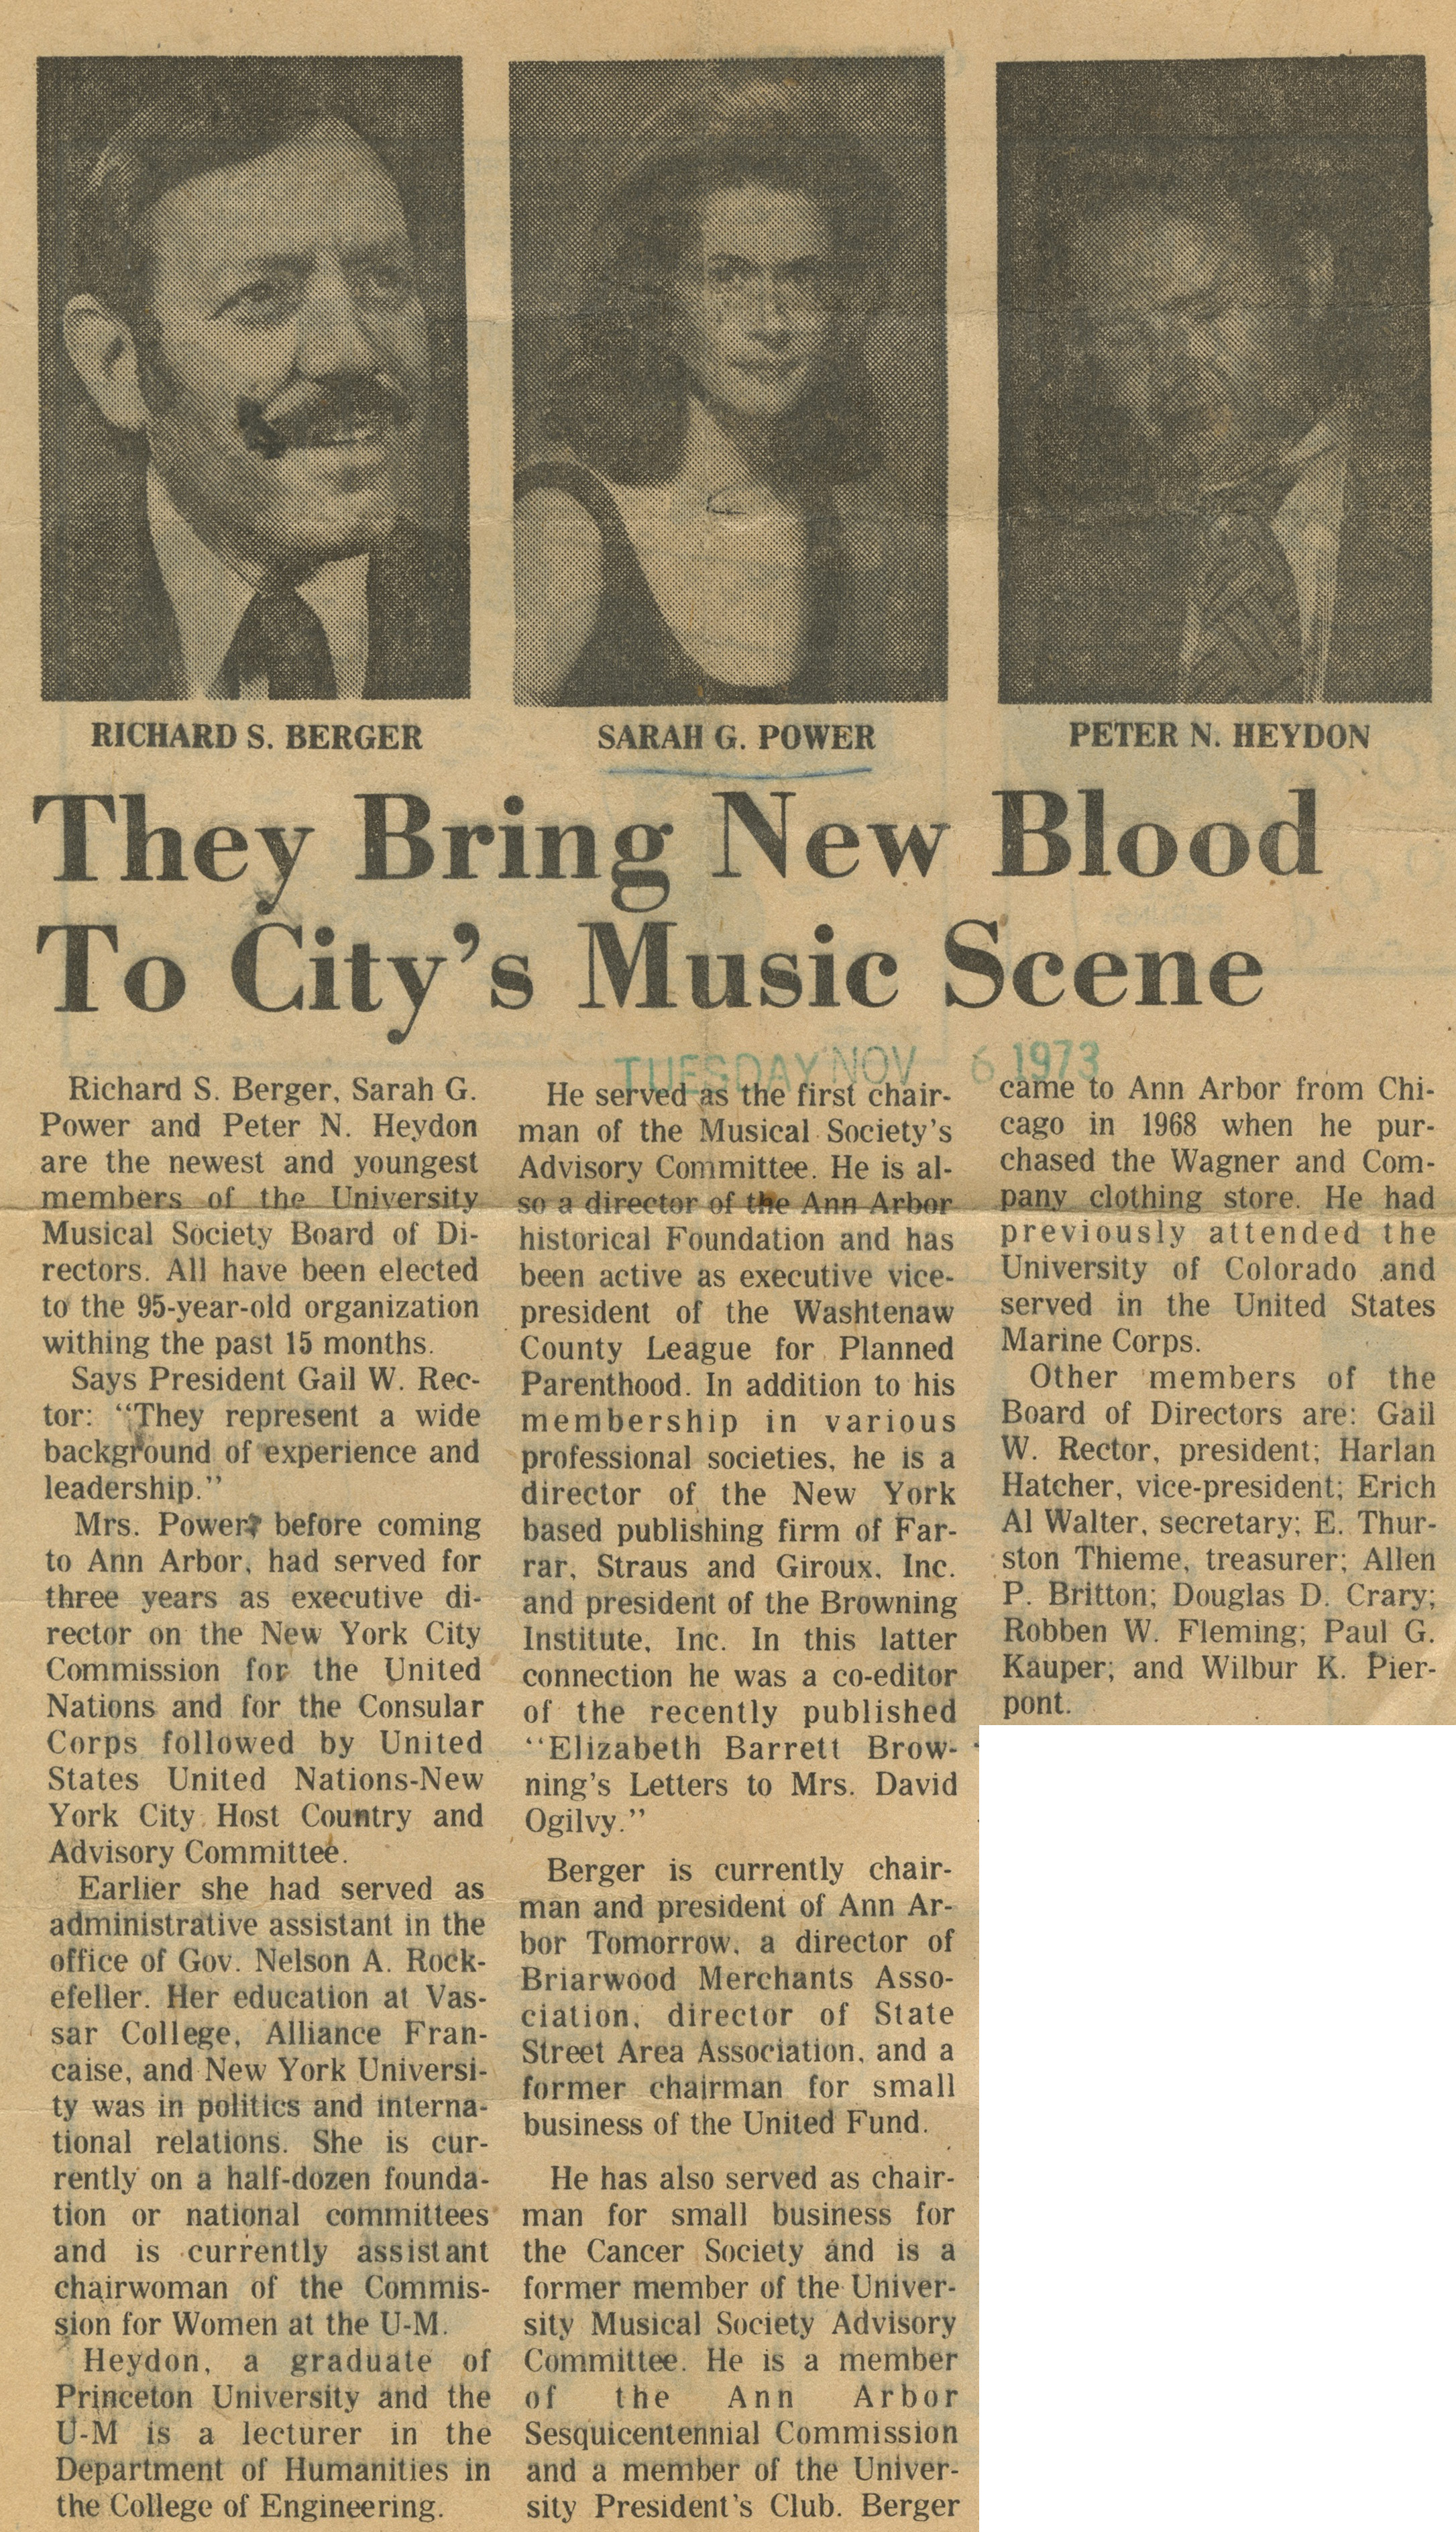 They Bring New Blood To The City's Music Scene image